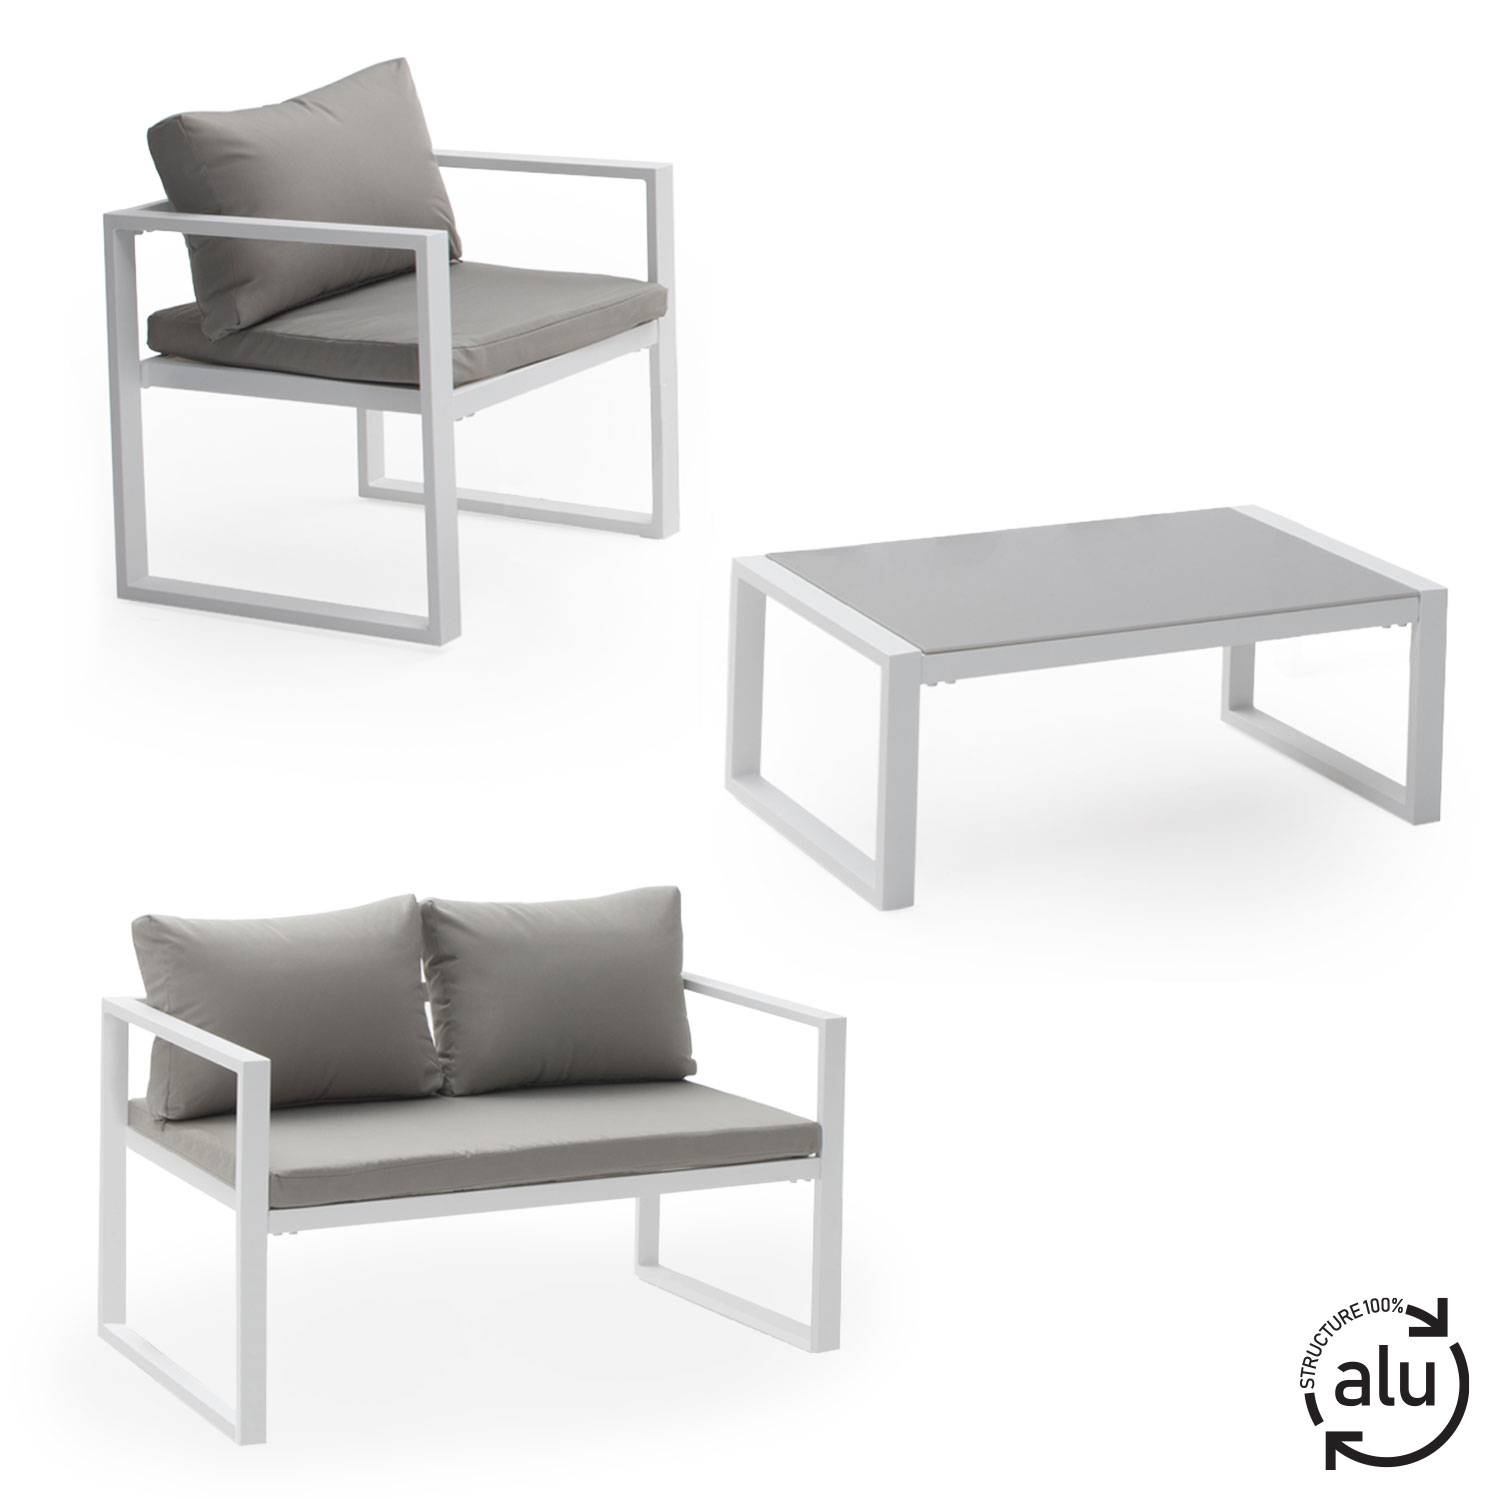 salon de jardin bas aluminium blanc et coussins gris 4 places. Black Bedroom Furniture Sets. Home Design Ideas